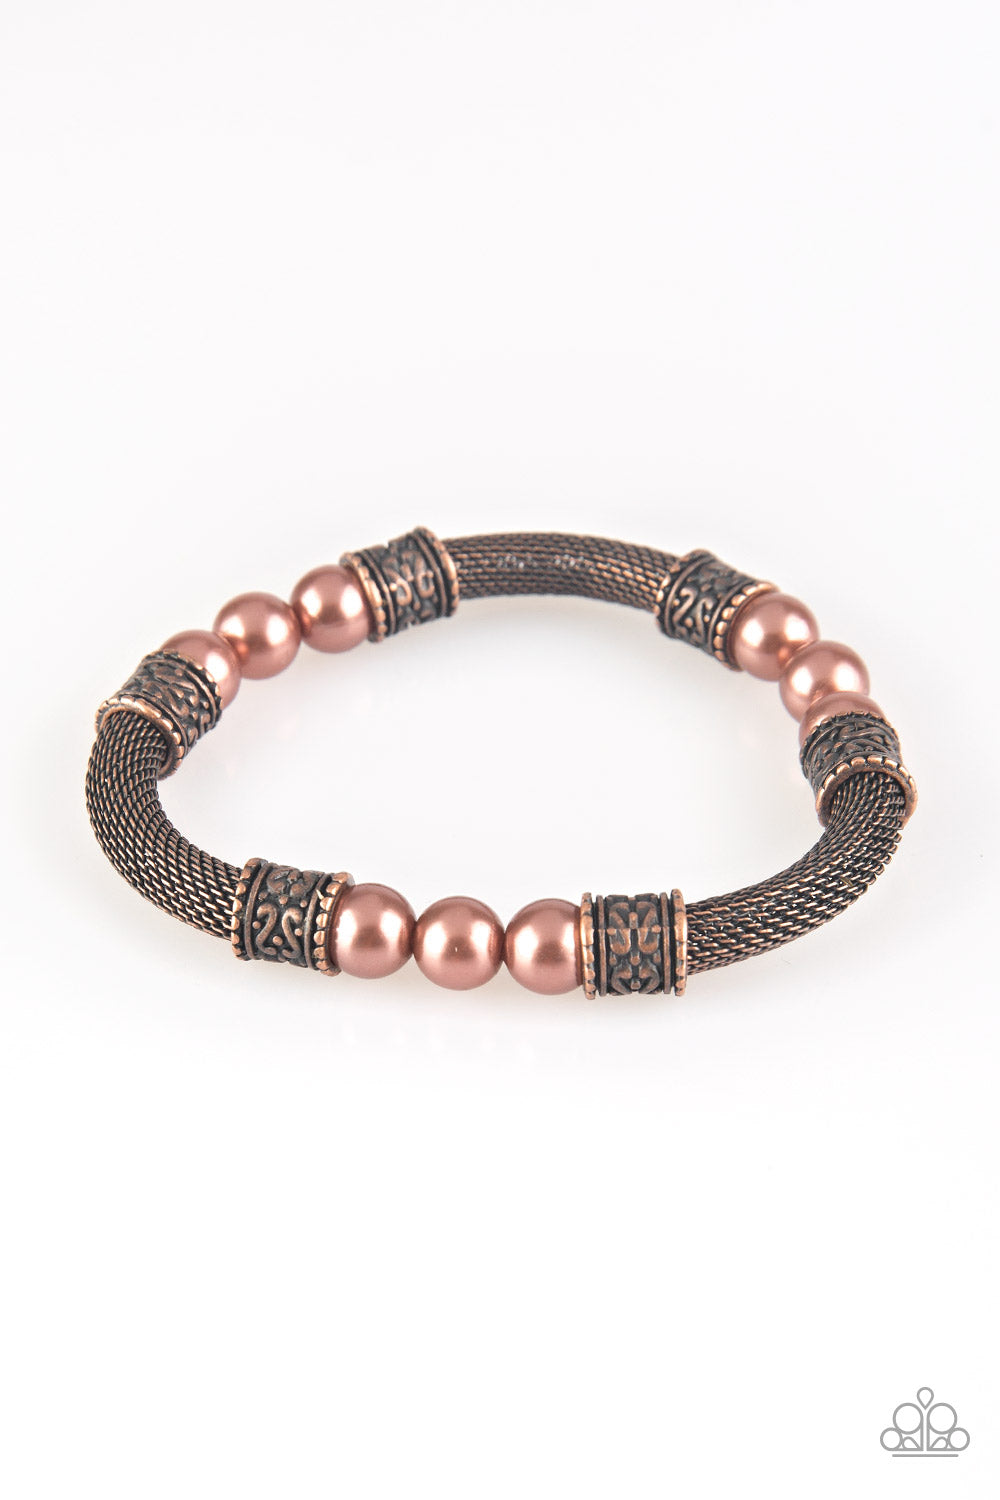 Talk Some SENSEI - Copper Bracelet - SavvyChicksJewelry